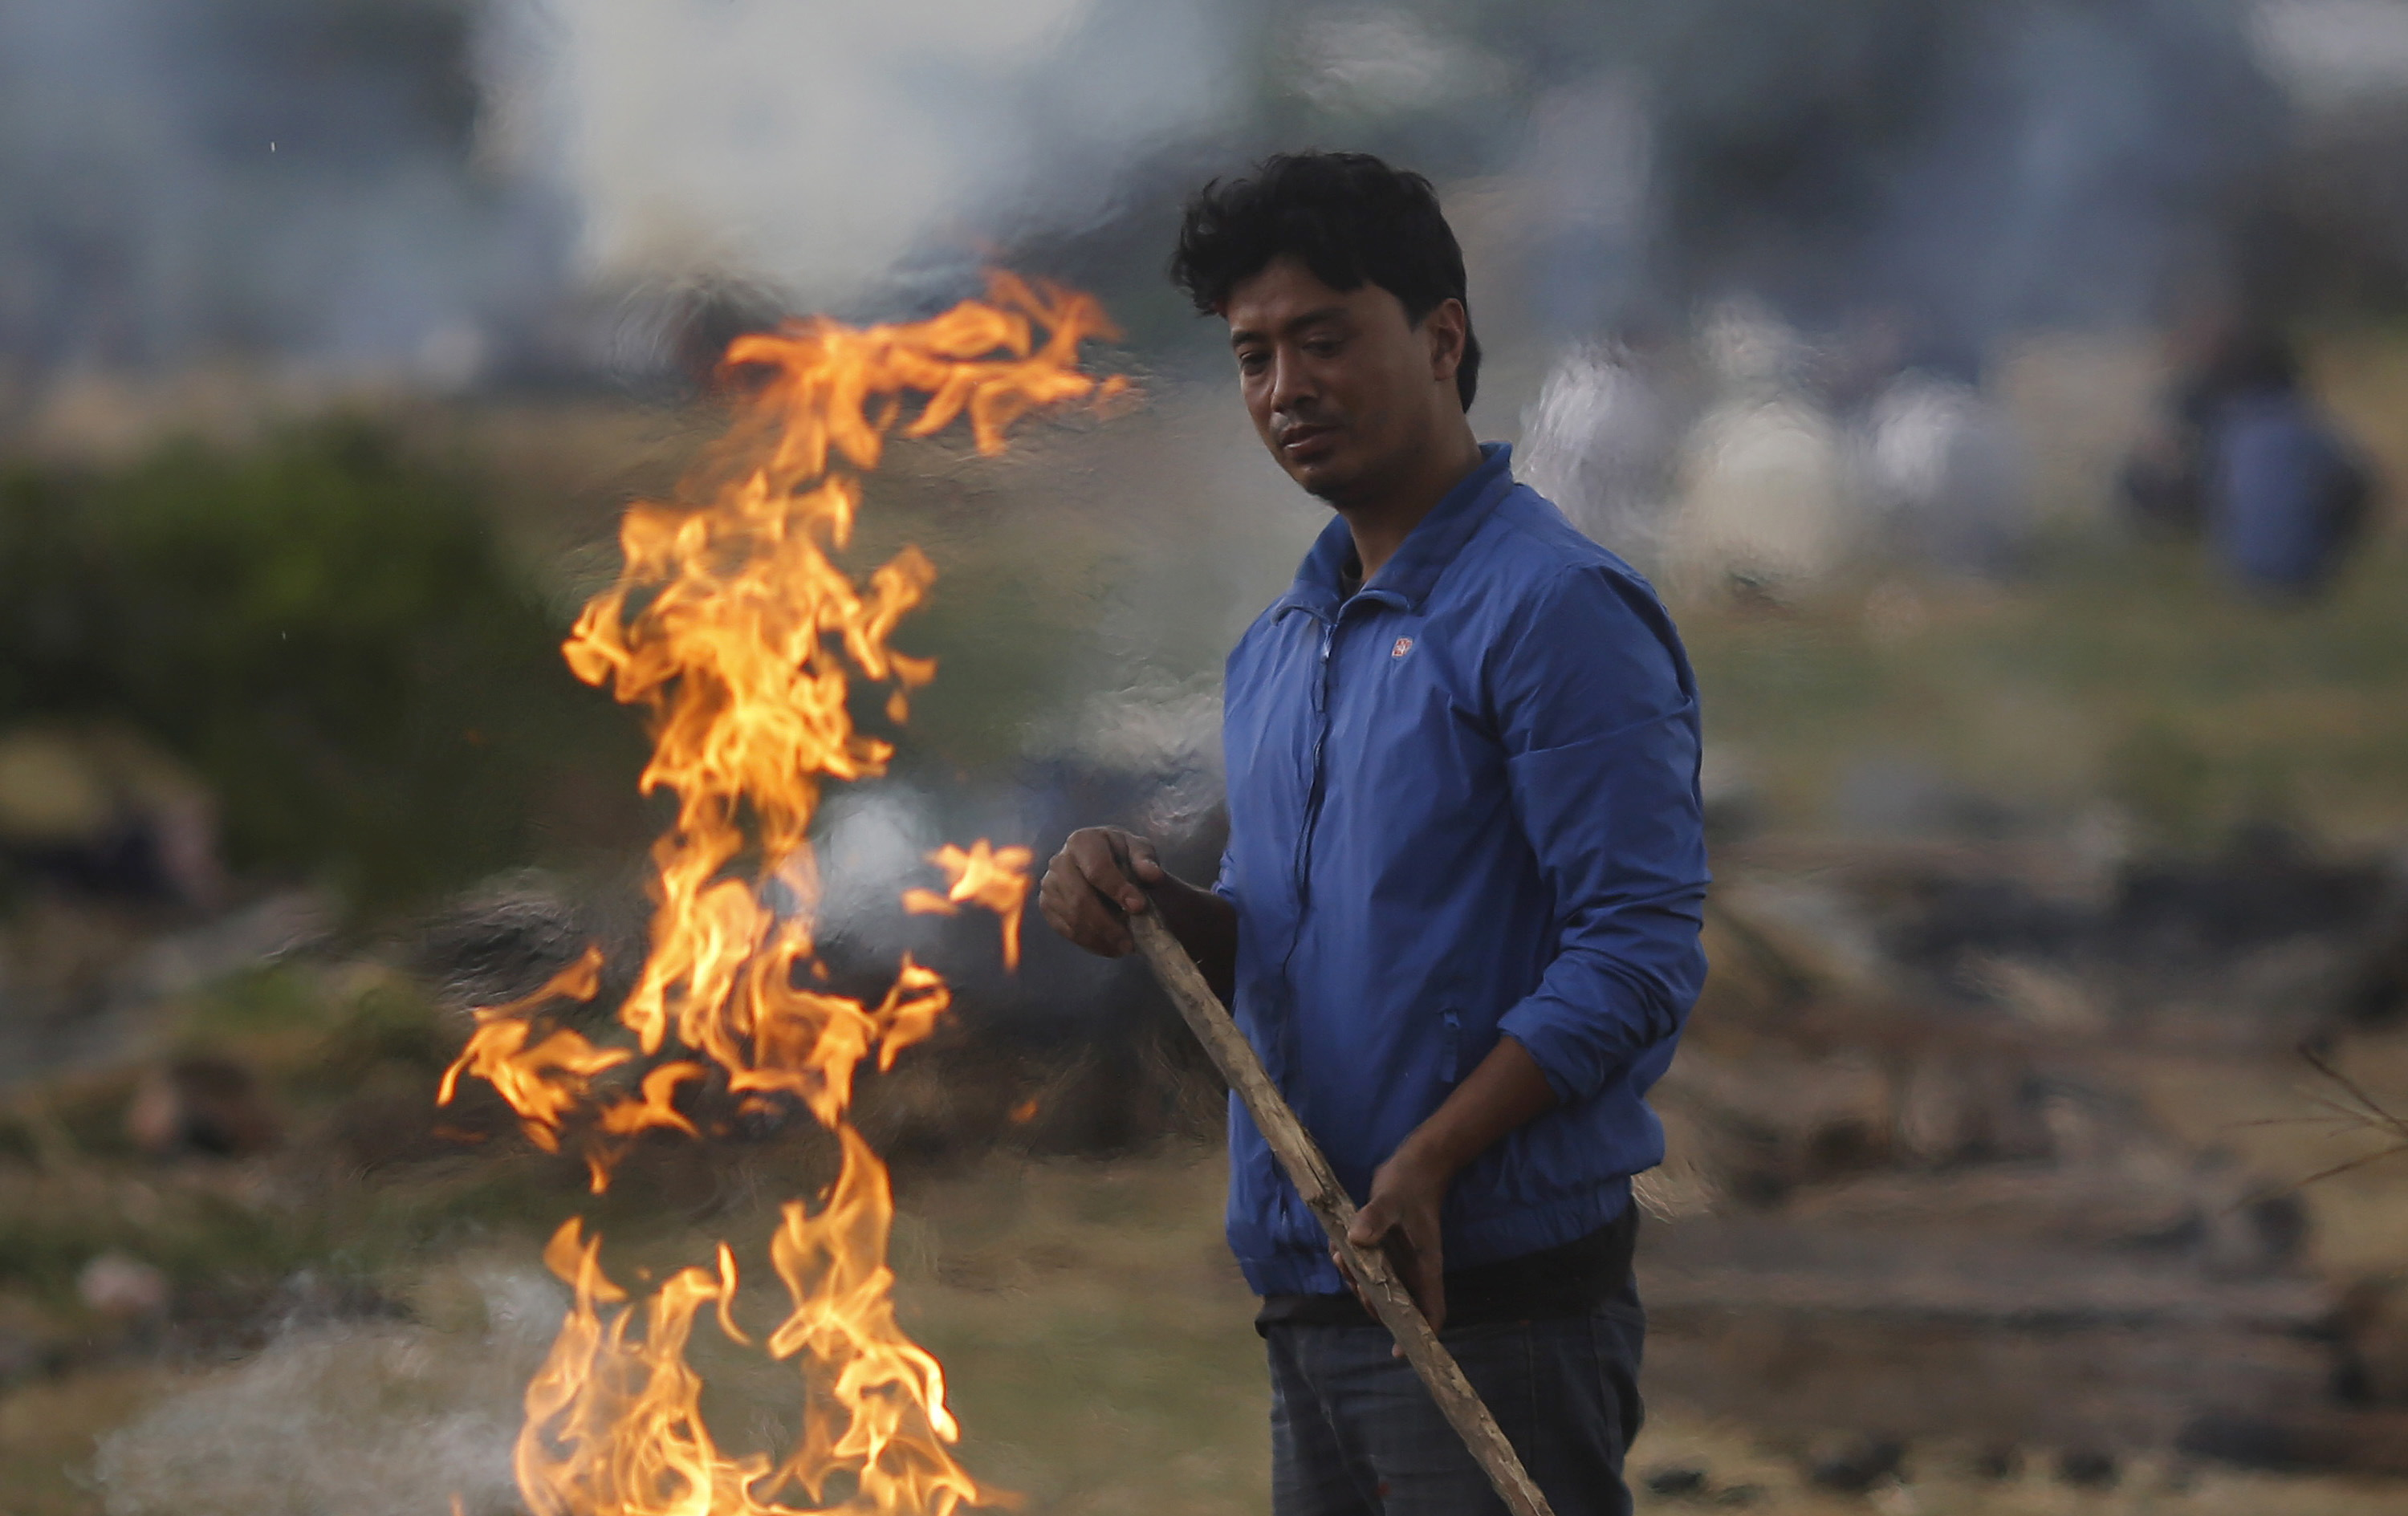 A man stands next to the burning pyre of a family member at a cremation ground after Saturday's earthquake in Bhaktapur, Nepal on Monday. Photo by Adnan Abidi/Reuters